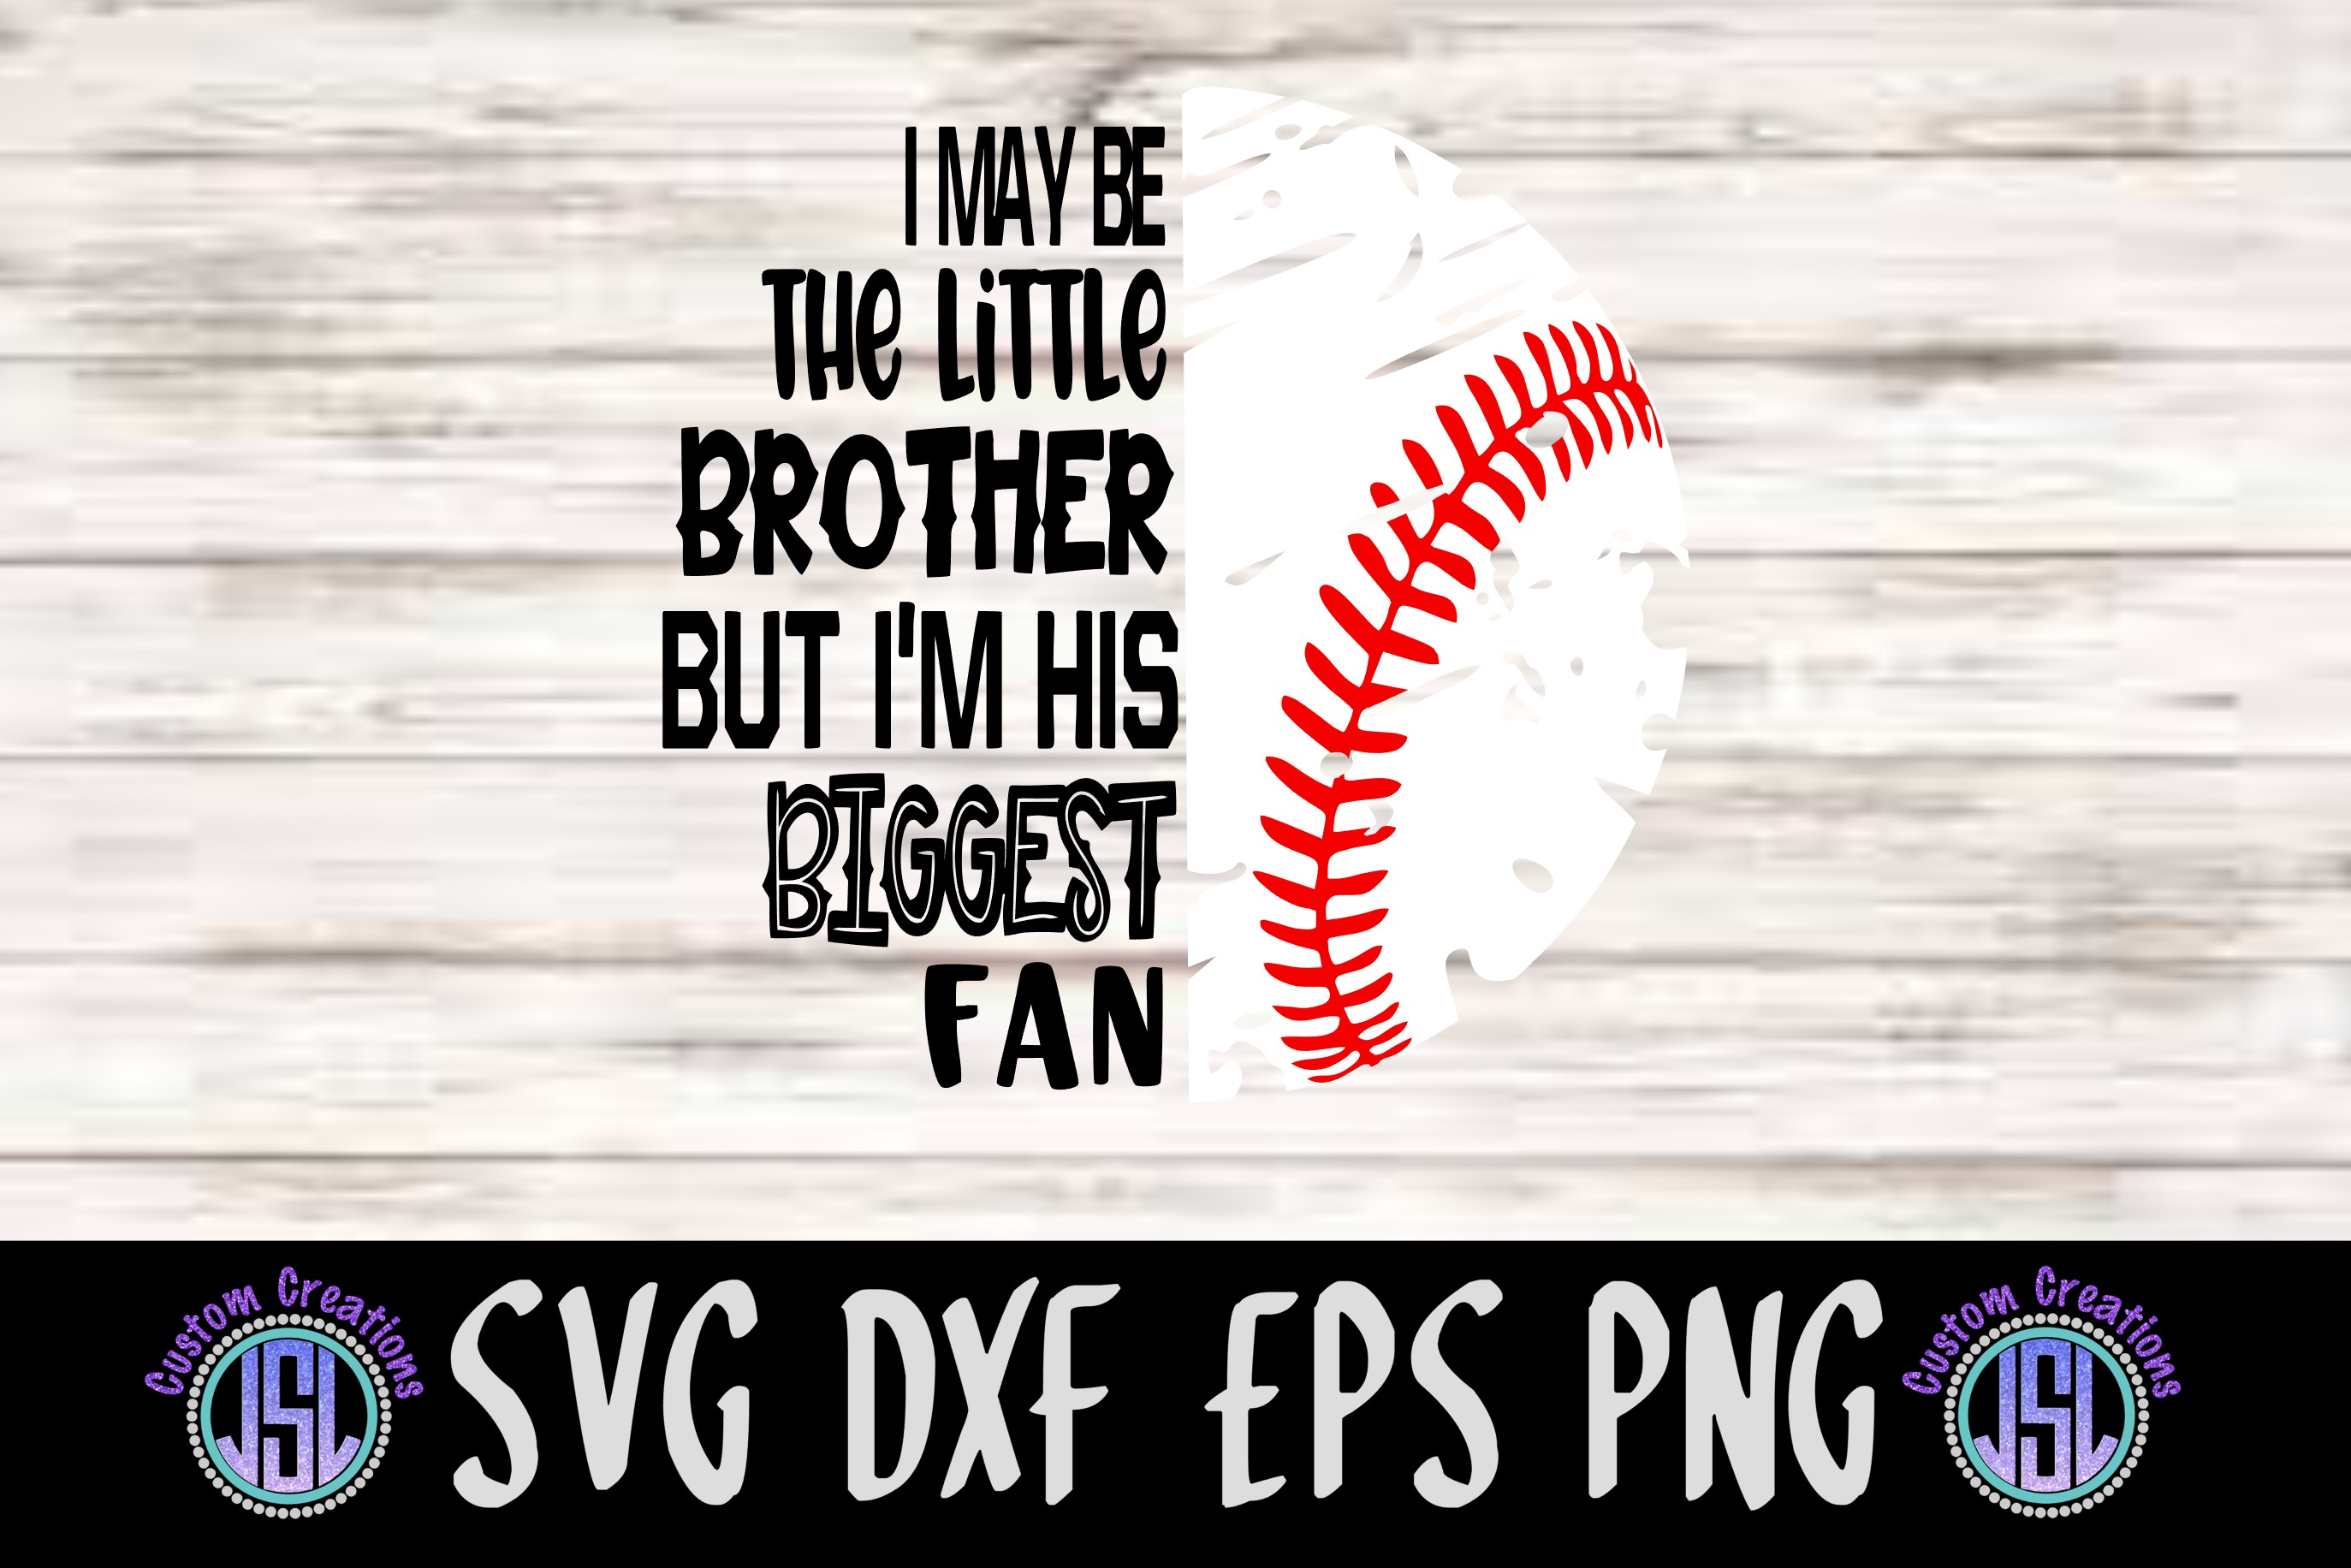 Biggest Fan Little Brother & Sister | SVG DXF EPS PNG example image 2